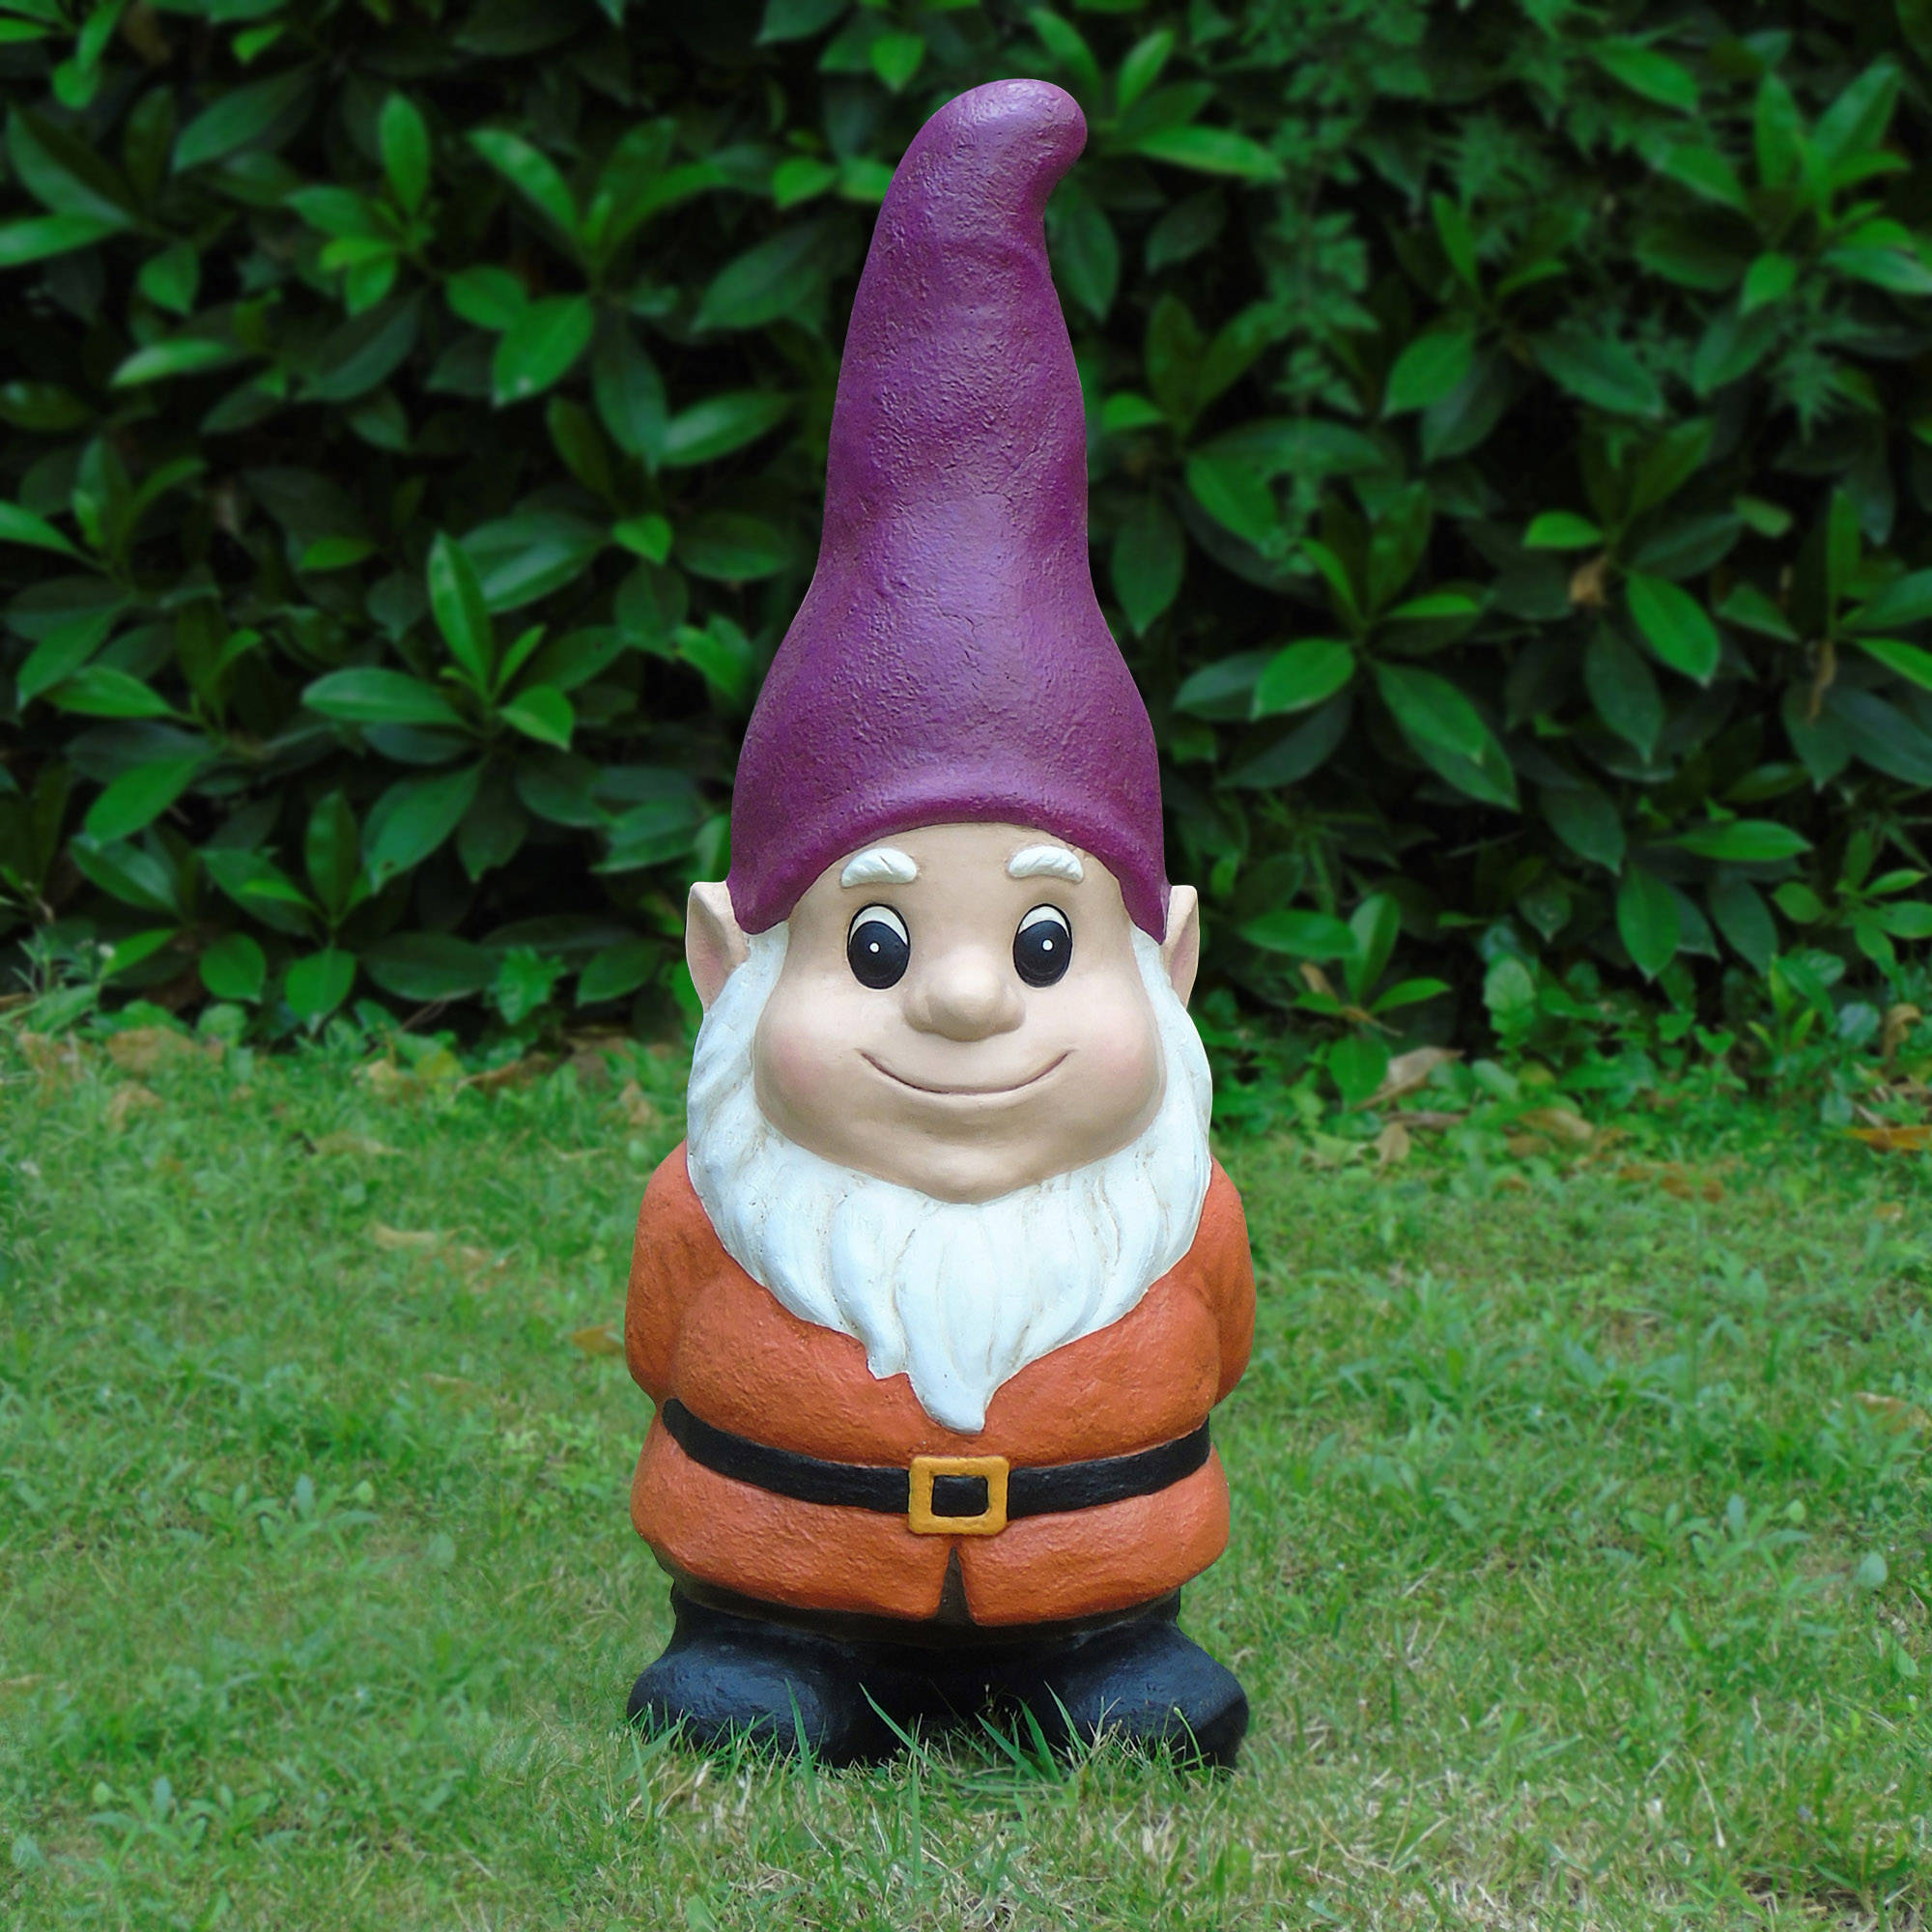 Gnome In Garden: The Meaning And Symbolism Of The Word